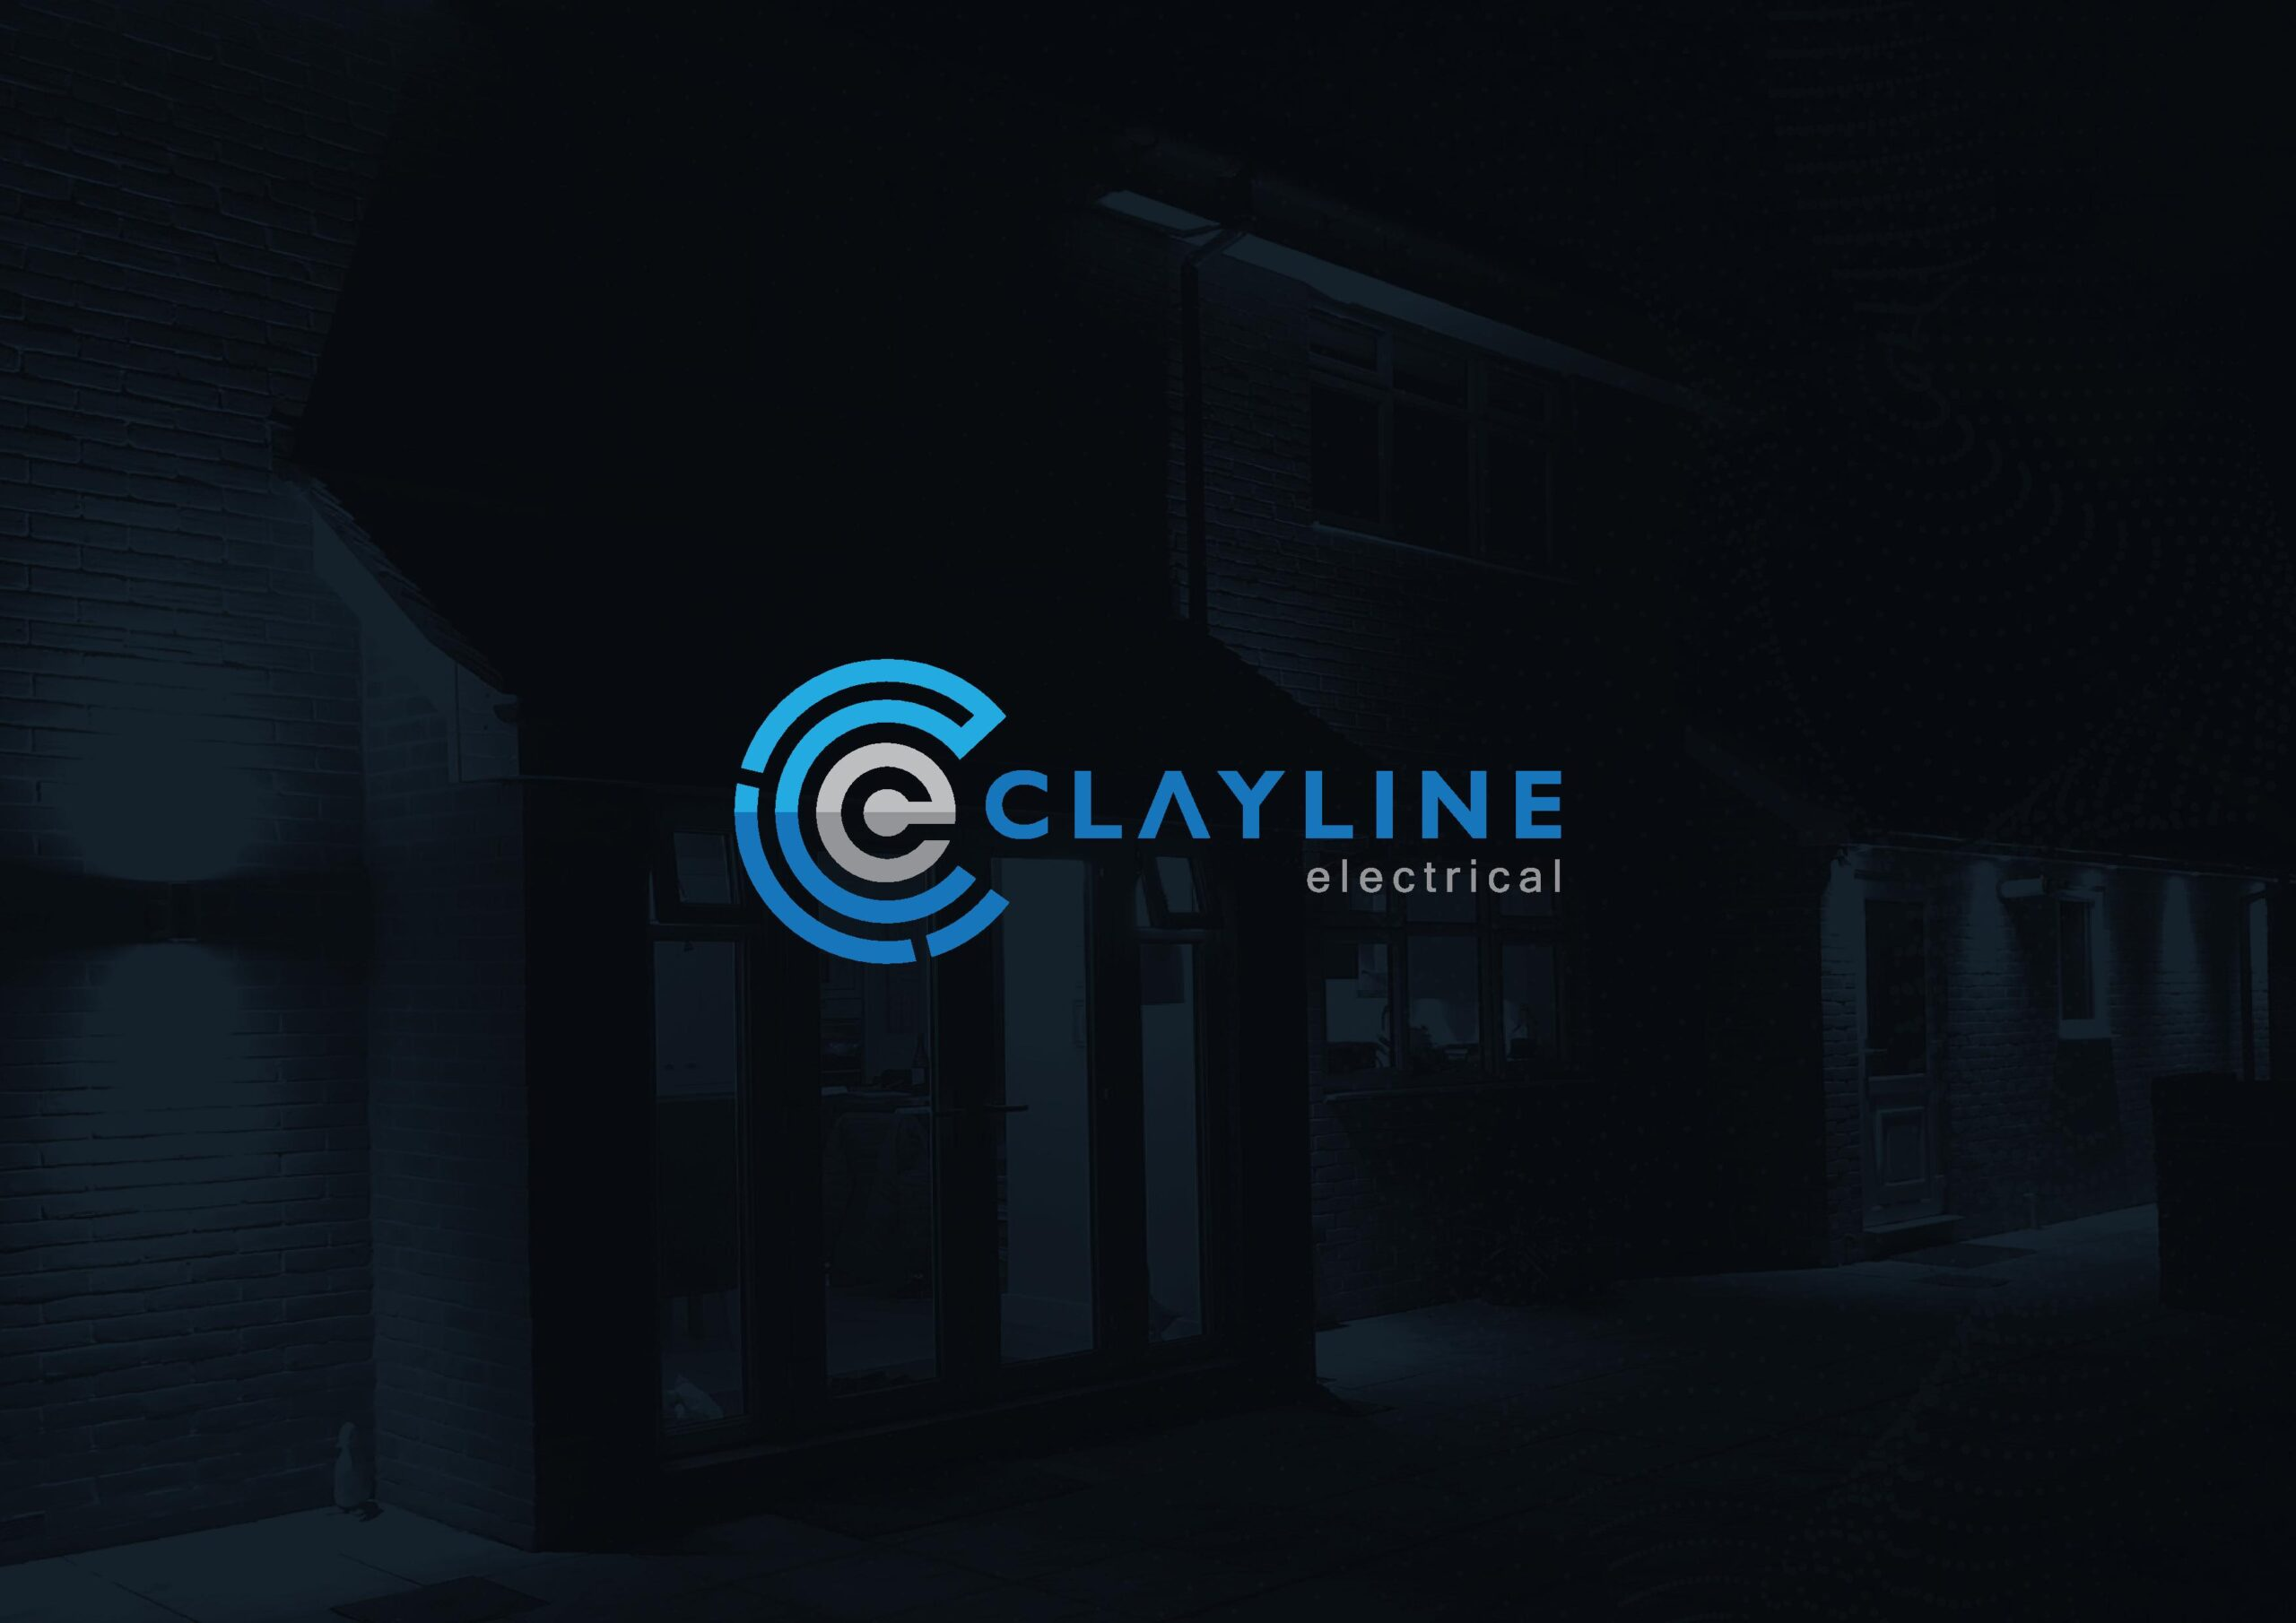 Clayline electrical thumbnail